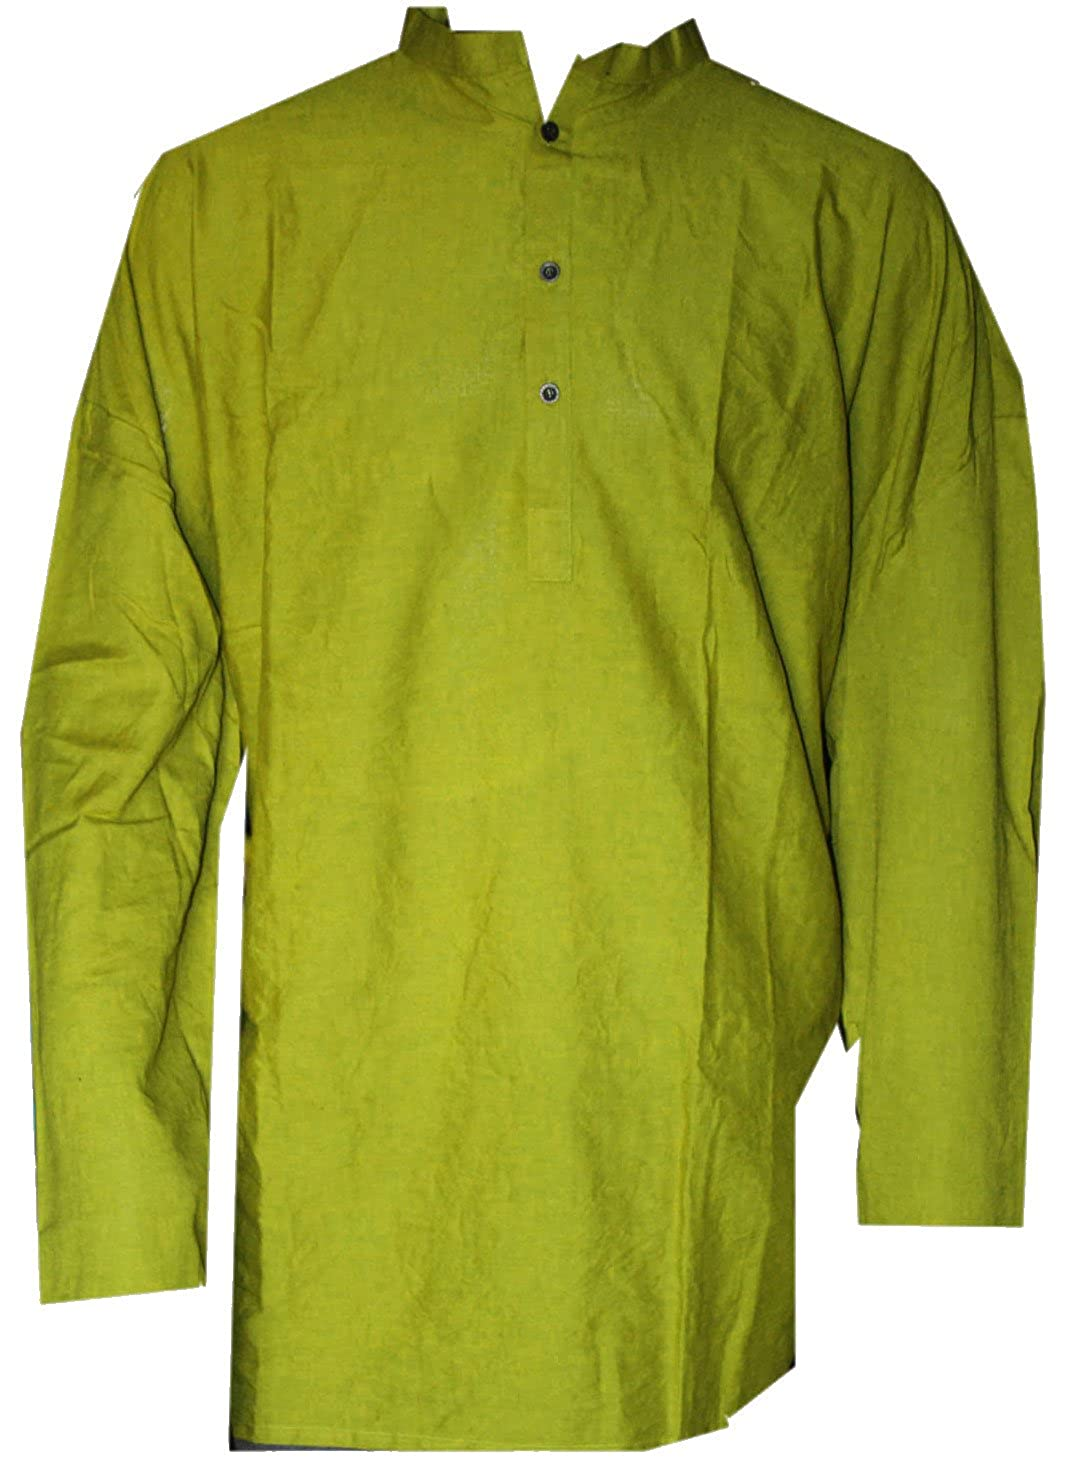 Lakkar Haveli Indian 100/% Cotton Man/'s Shirt Lite Olive Green Color Solid Print Kurta Plus Size Loose fit